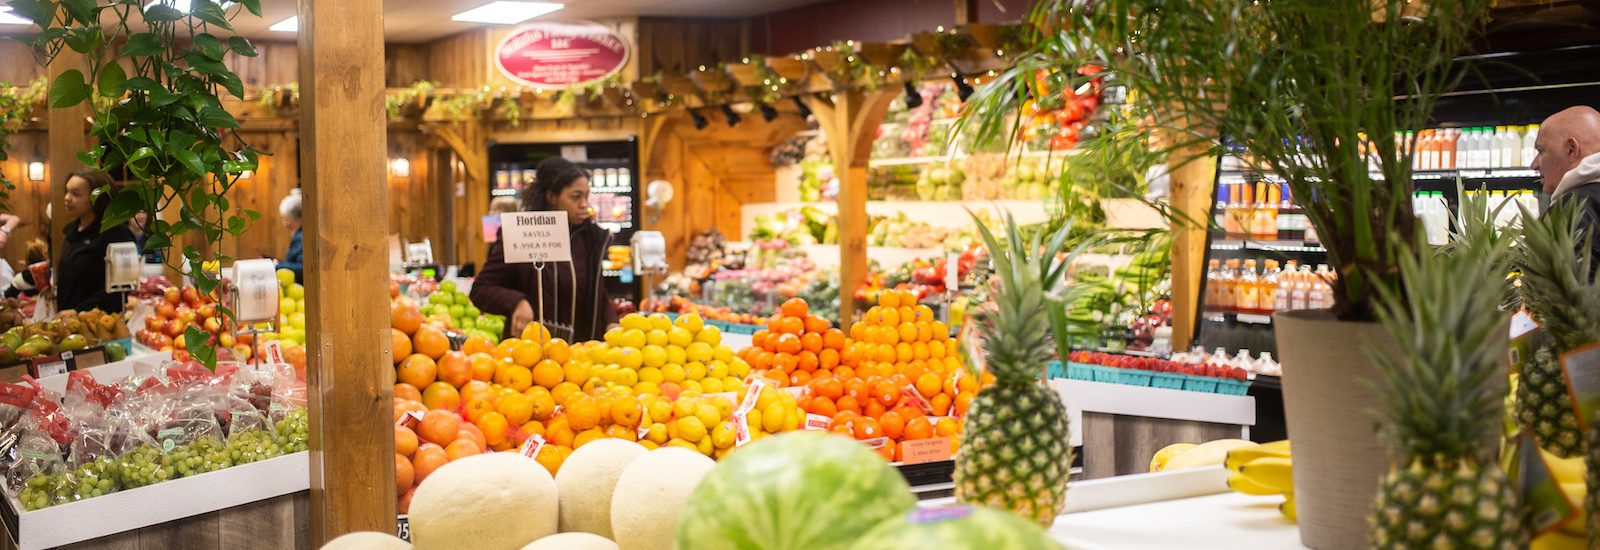 Inside colorful grocery store